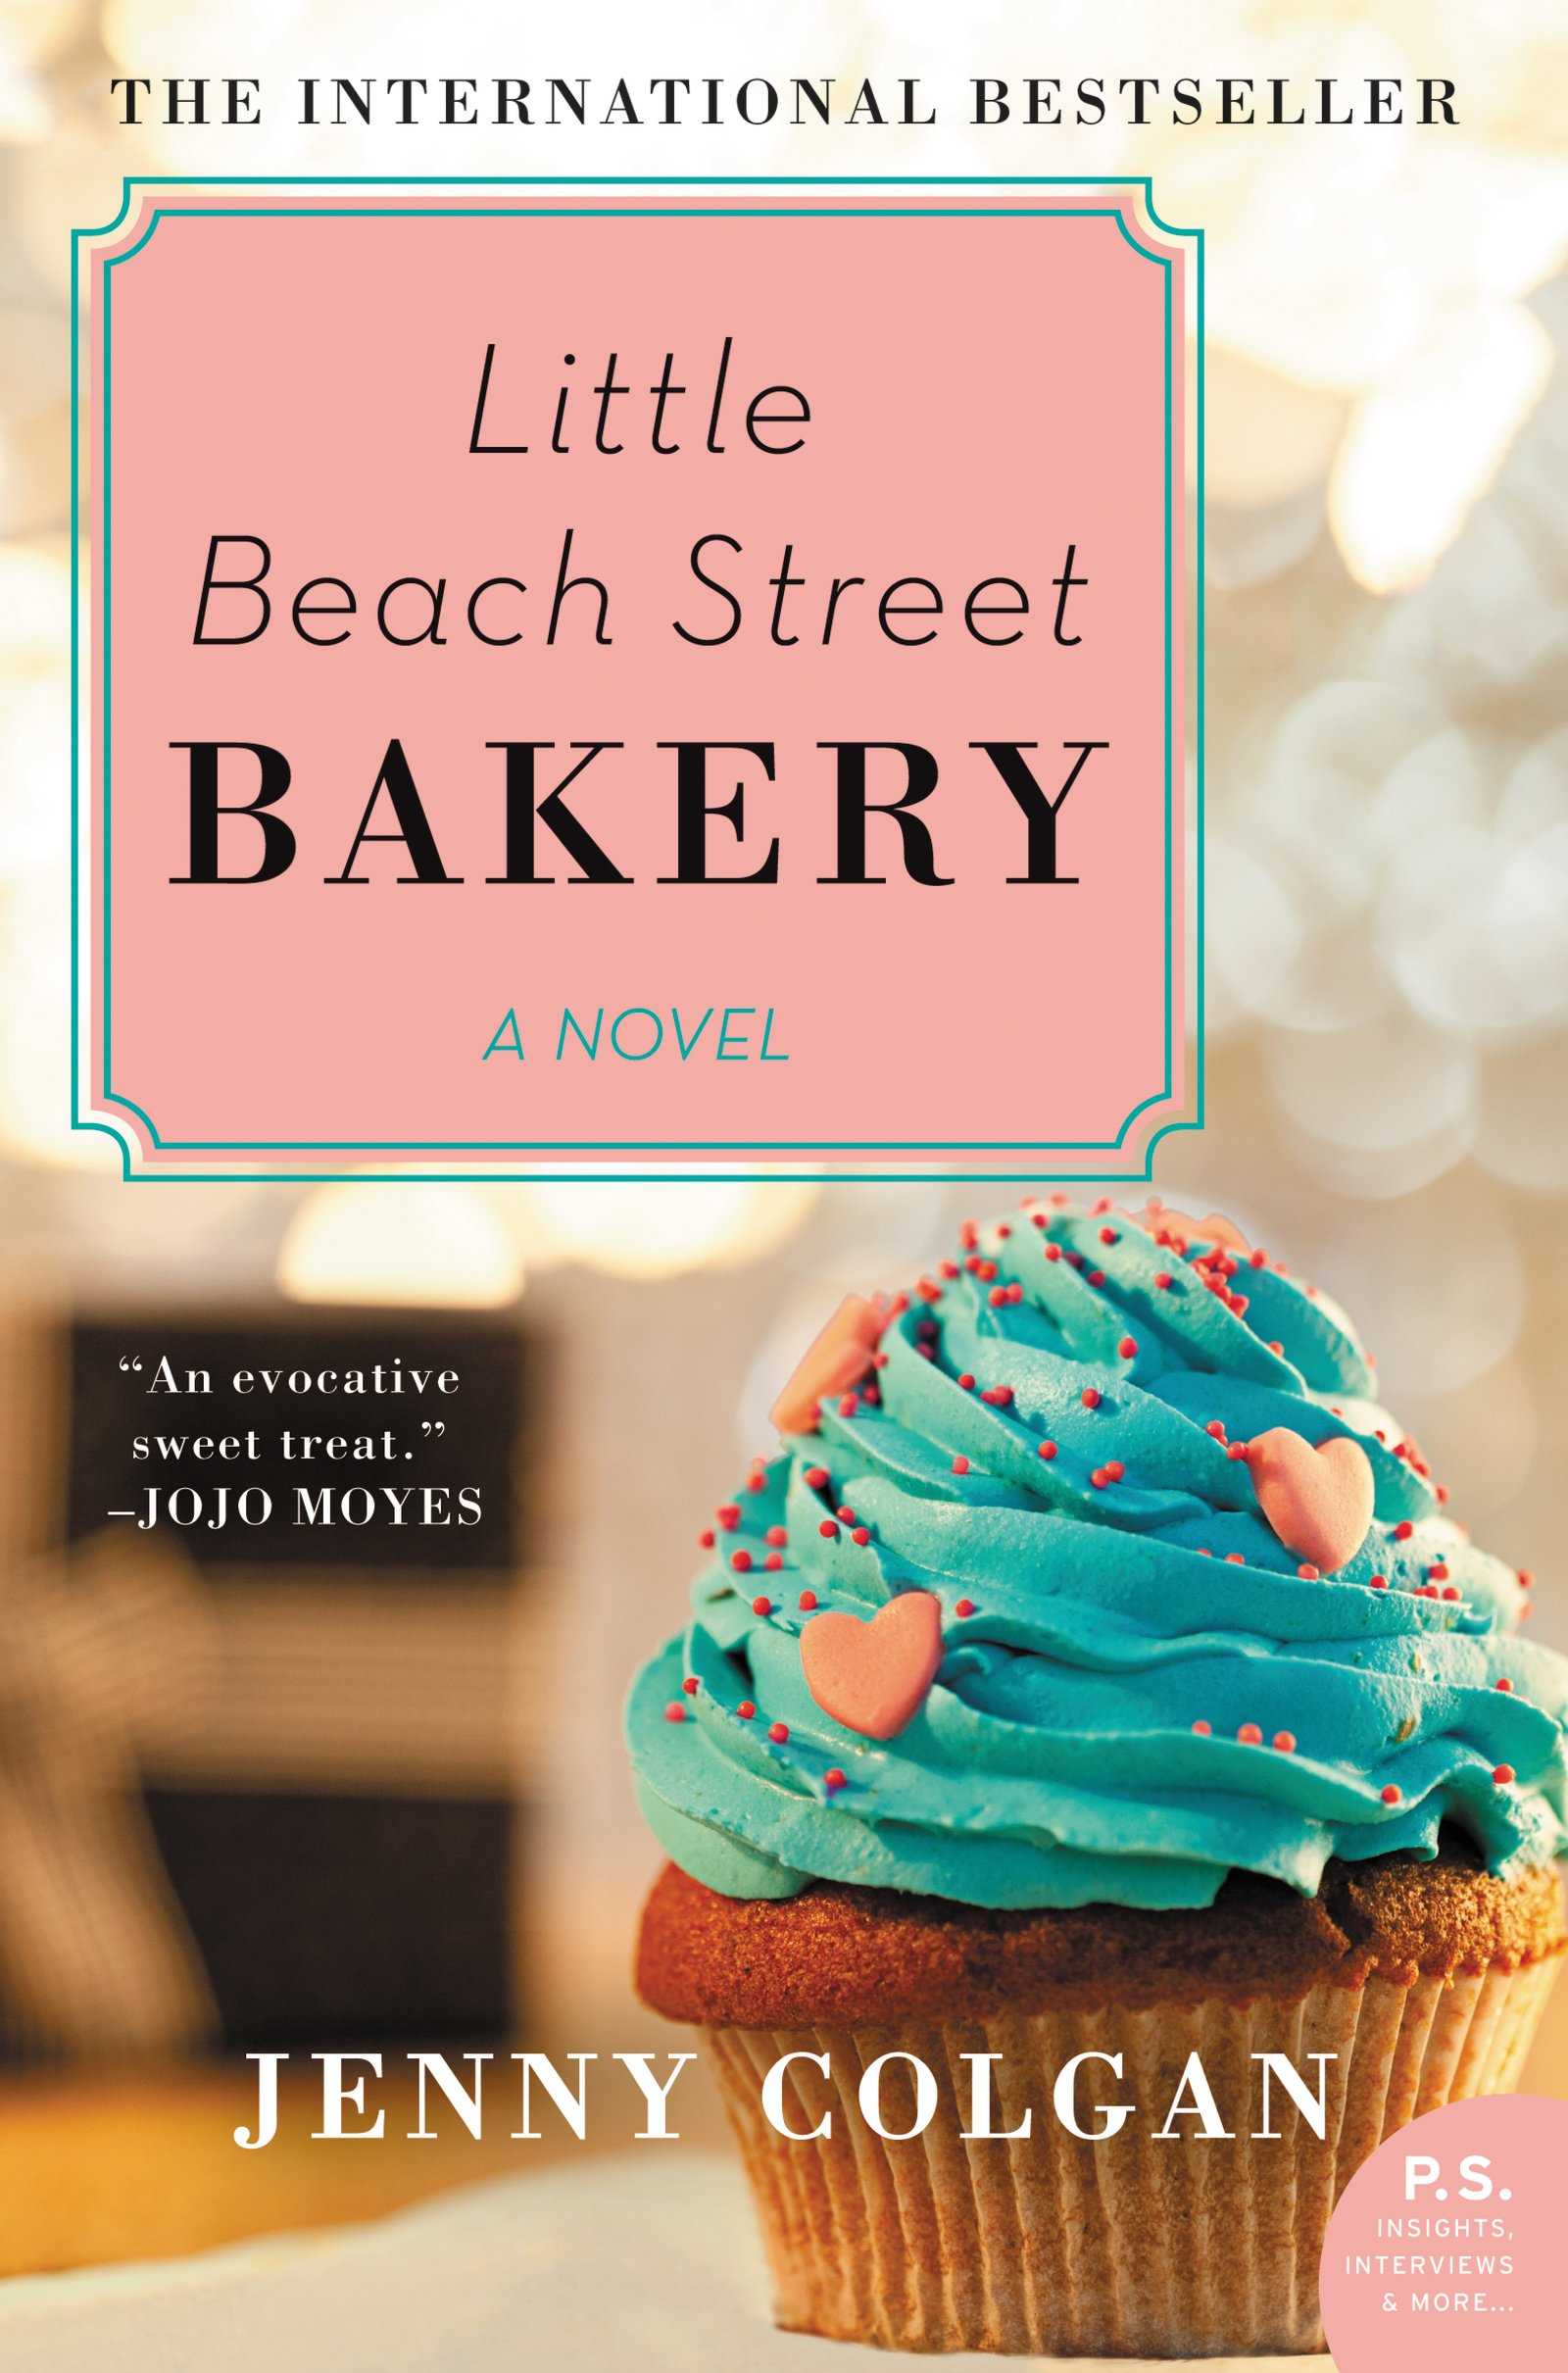 Check Out Corner BakeryProducts On Amazon!